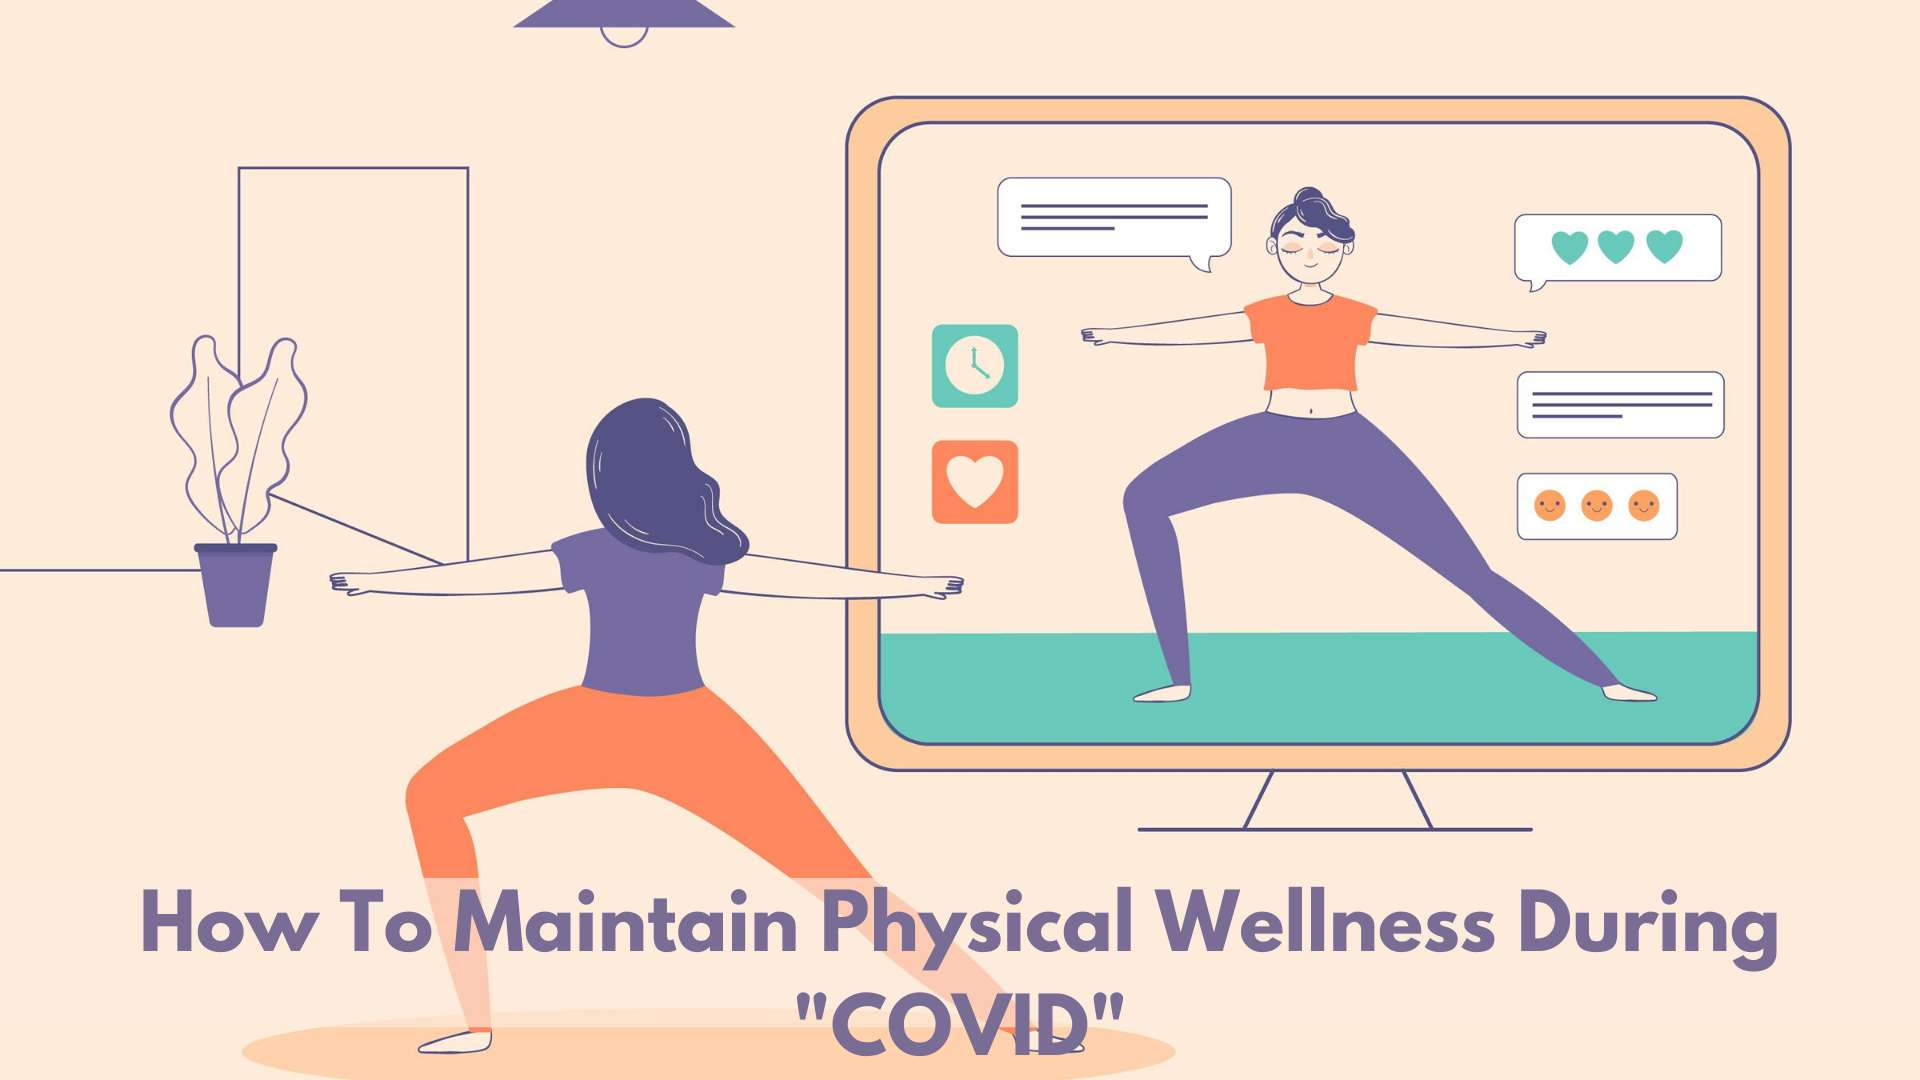 How to maintain physical wellness during COVID